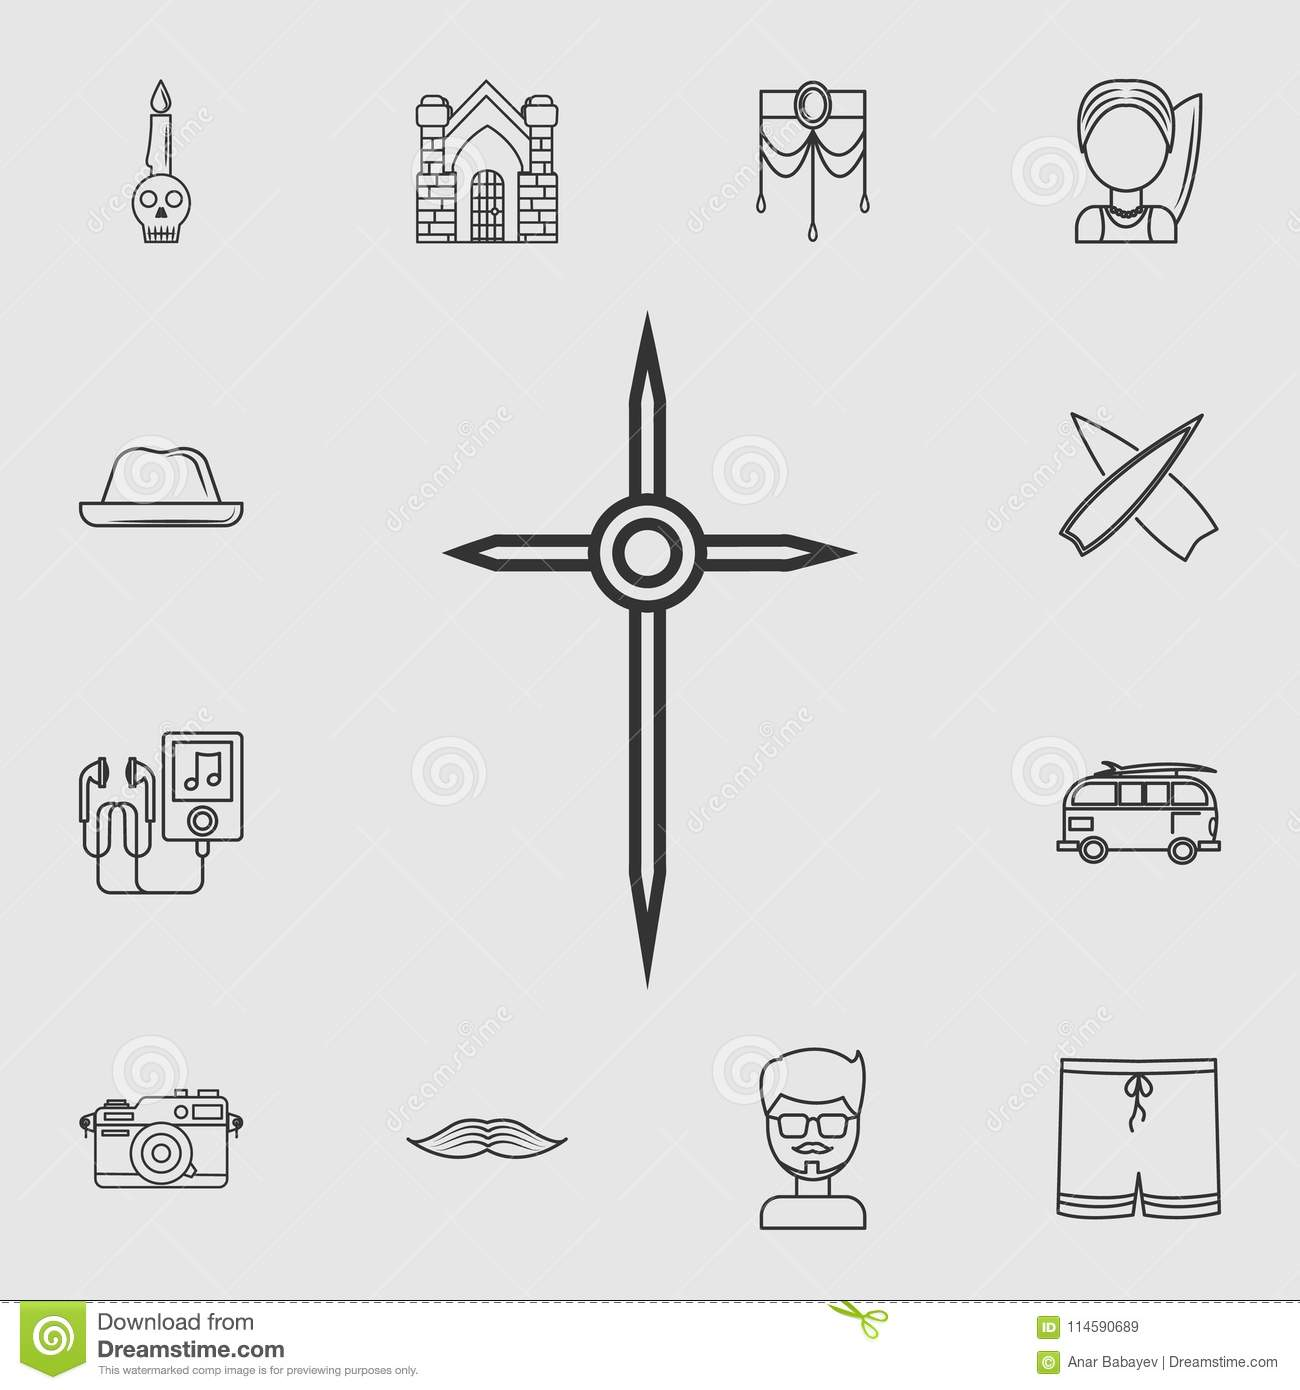 detailed set of life style icons  premium quality graphic design  one of  the collection icons for websites, web design, mobile app on grey background